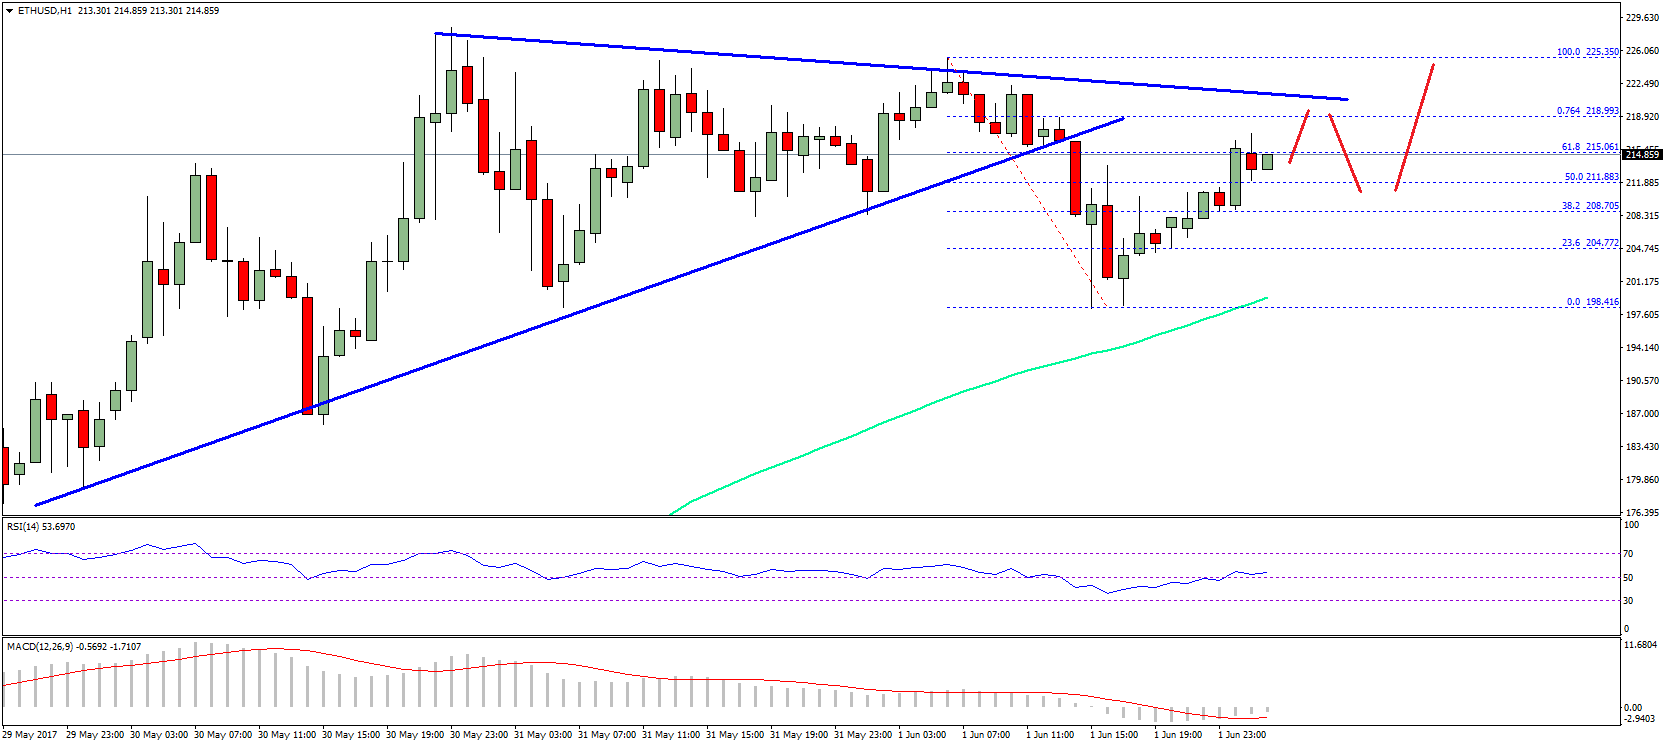 It Ears That The Price May Soon Test Trend Line At 221 Moment 61 8 Fib Retracement Level Of Last Decline From 225 High To